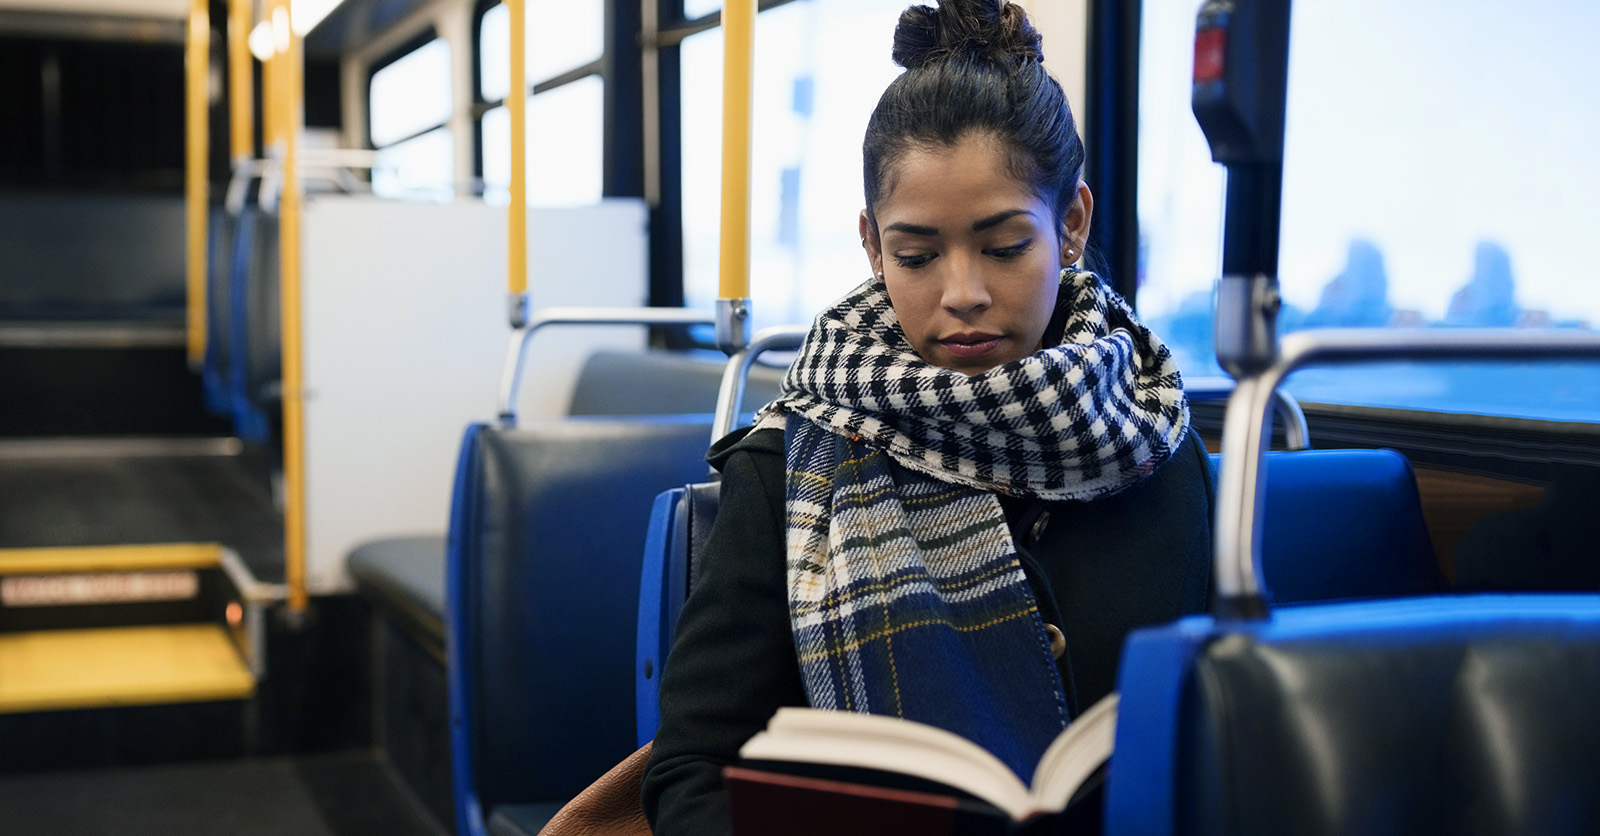 Female student on bus studying with a book